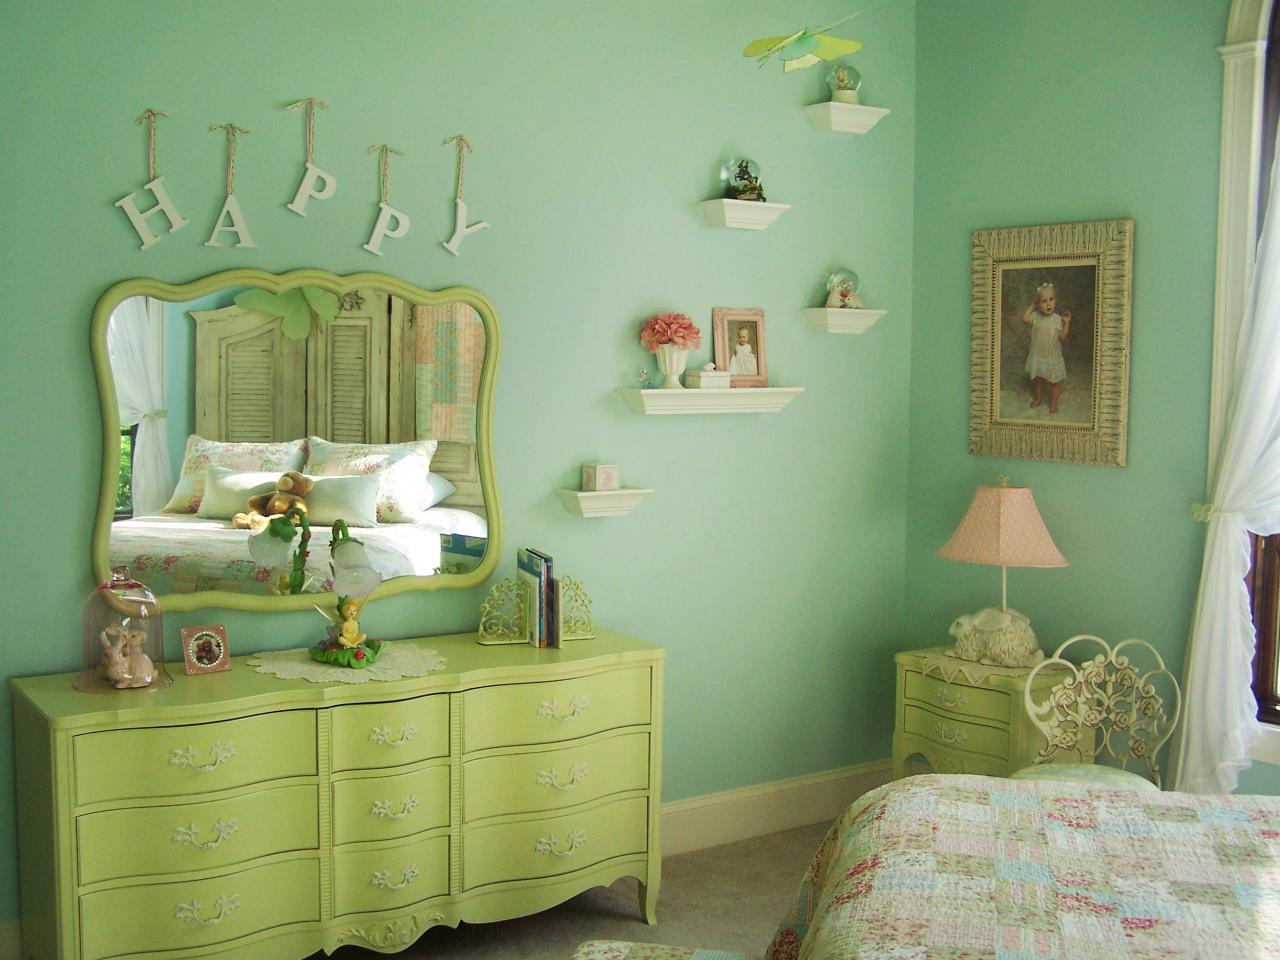 shabby chic children 39 s rooms kids room ideas for playroom bedroom bathroom hgtv. Black Bedroom Furniture Sets. Home Design Ideas